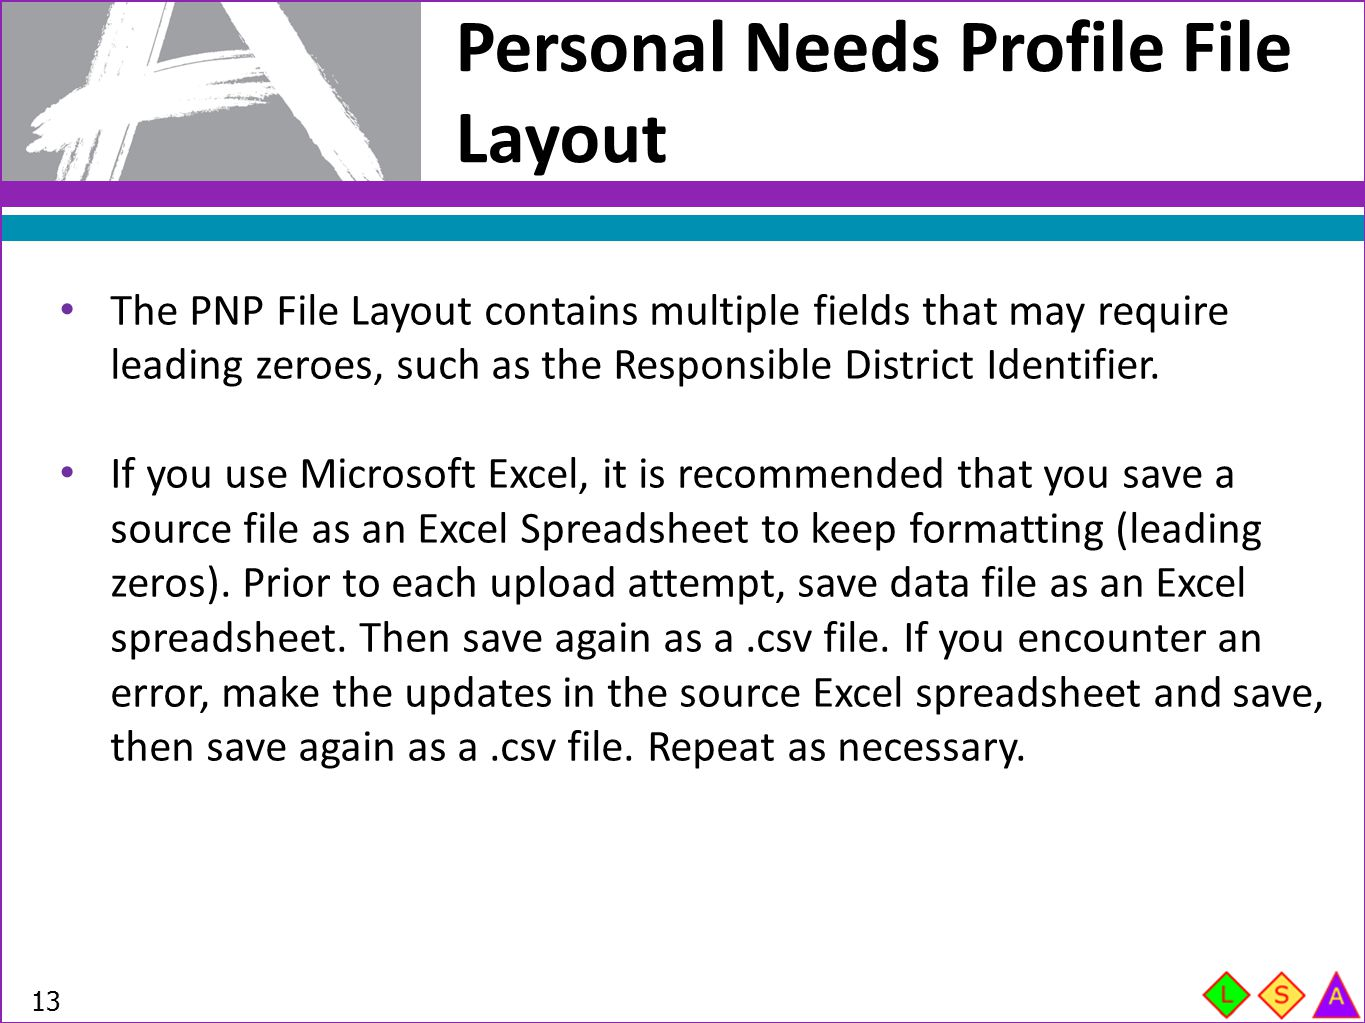 Personal Needs Profile File Layout